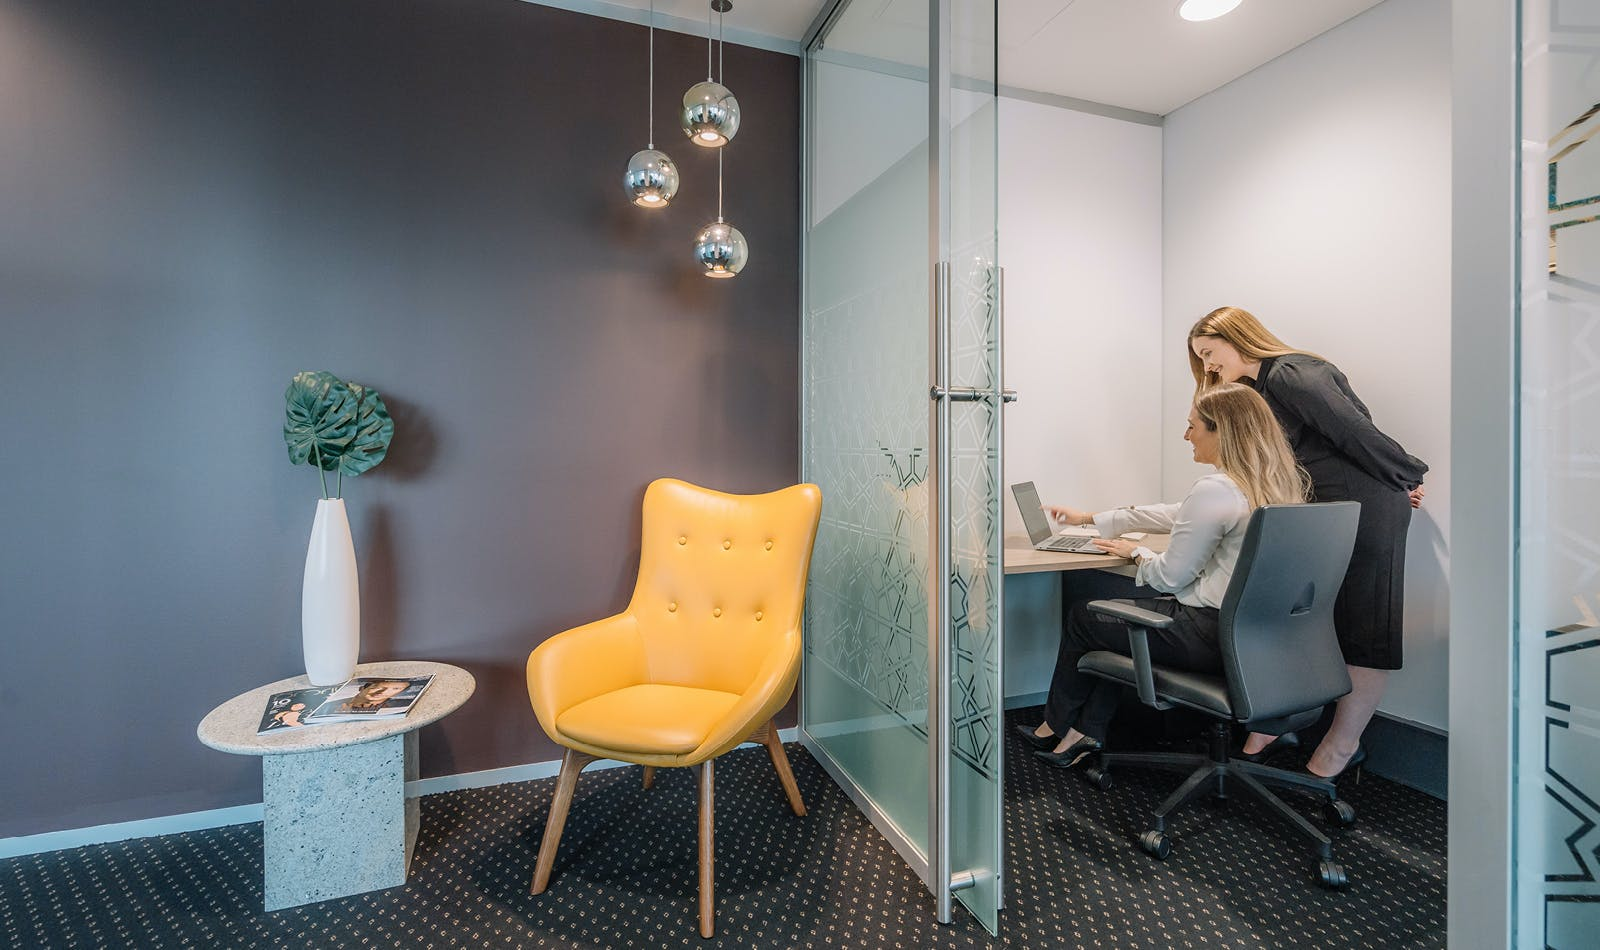 Executive 1-person private workspace, serviced office at Miller Street, image 1